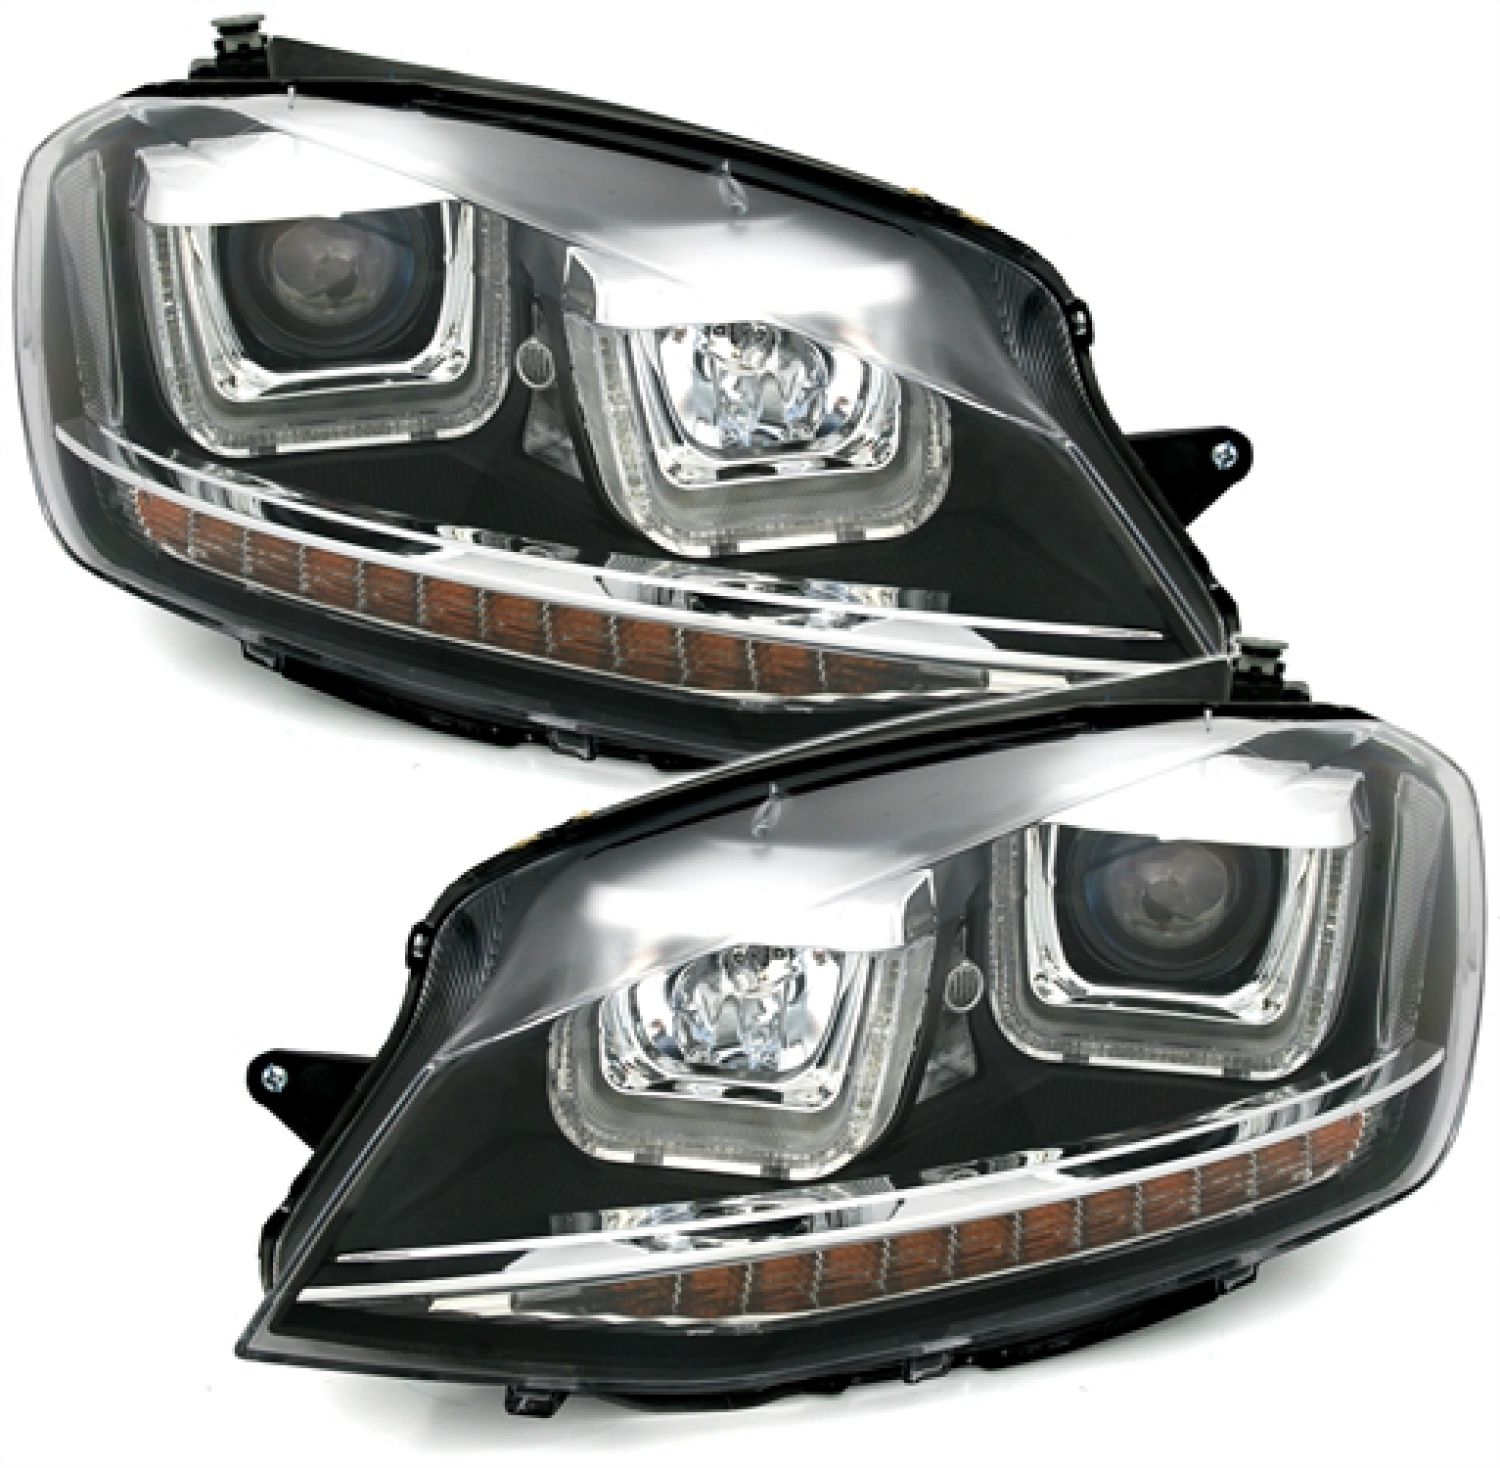 u tube scheinwerfer led tagfahrlicht blinker vw golf vii. Black Bedroom Furniture Sets. Home Design Ideas